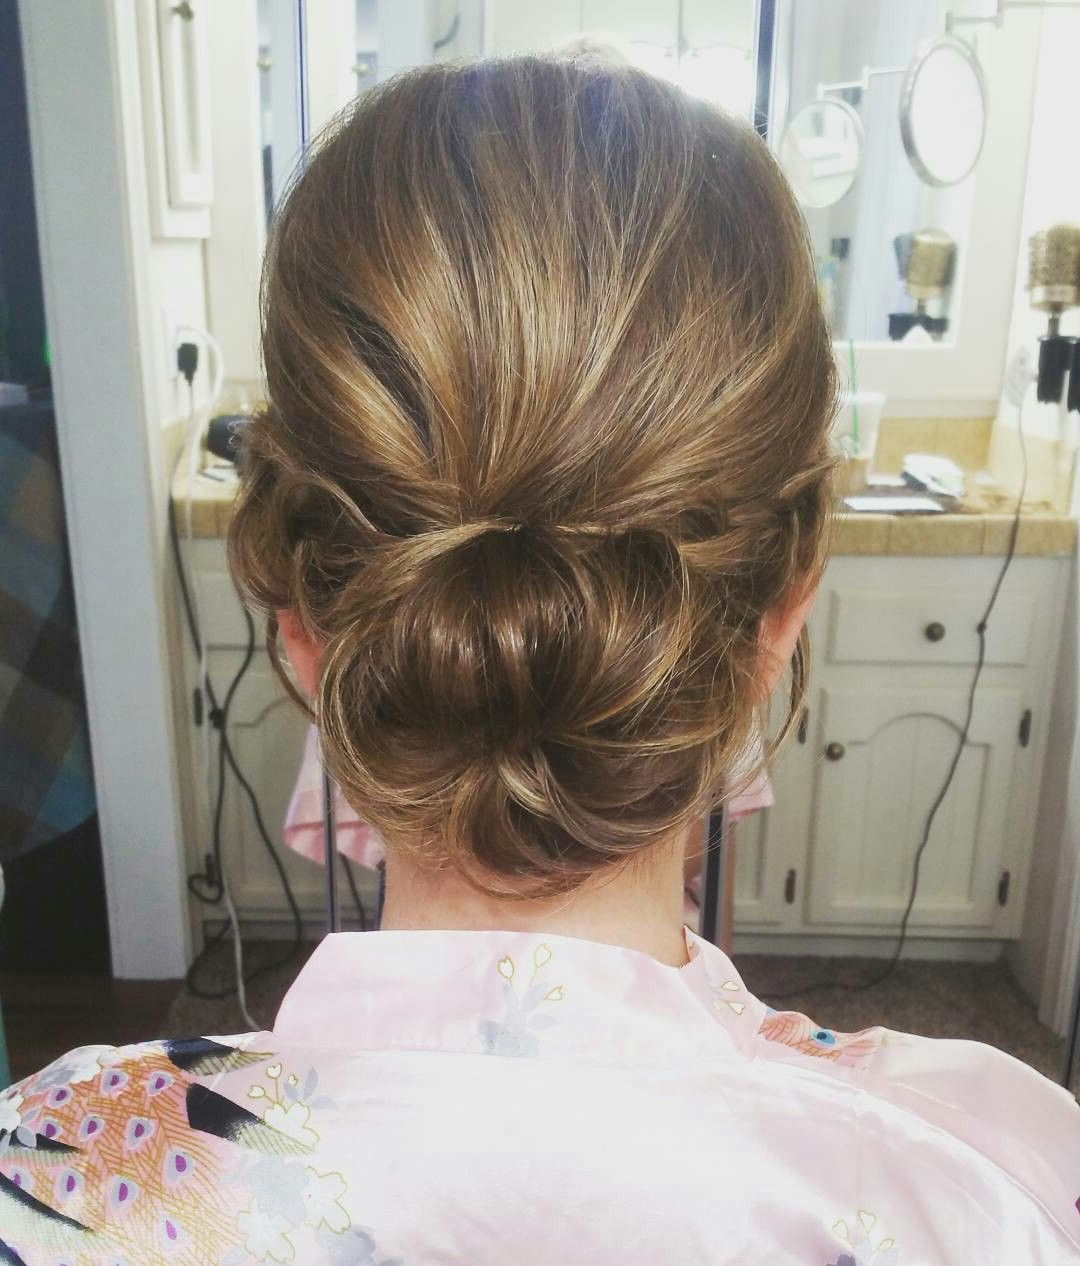 Simple Low Bun. Twisted Updo. Wedding Hairstyles (View 15 of 20)